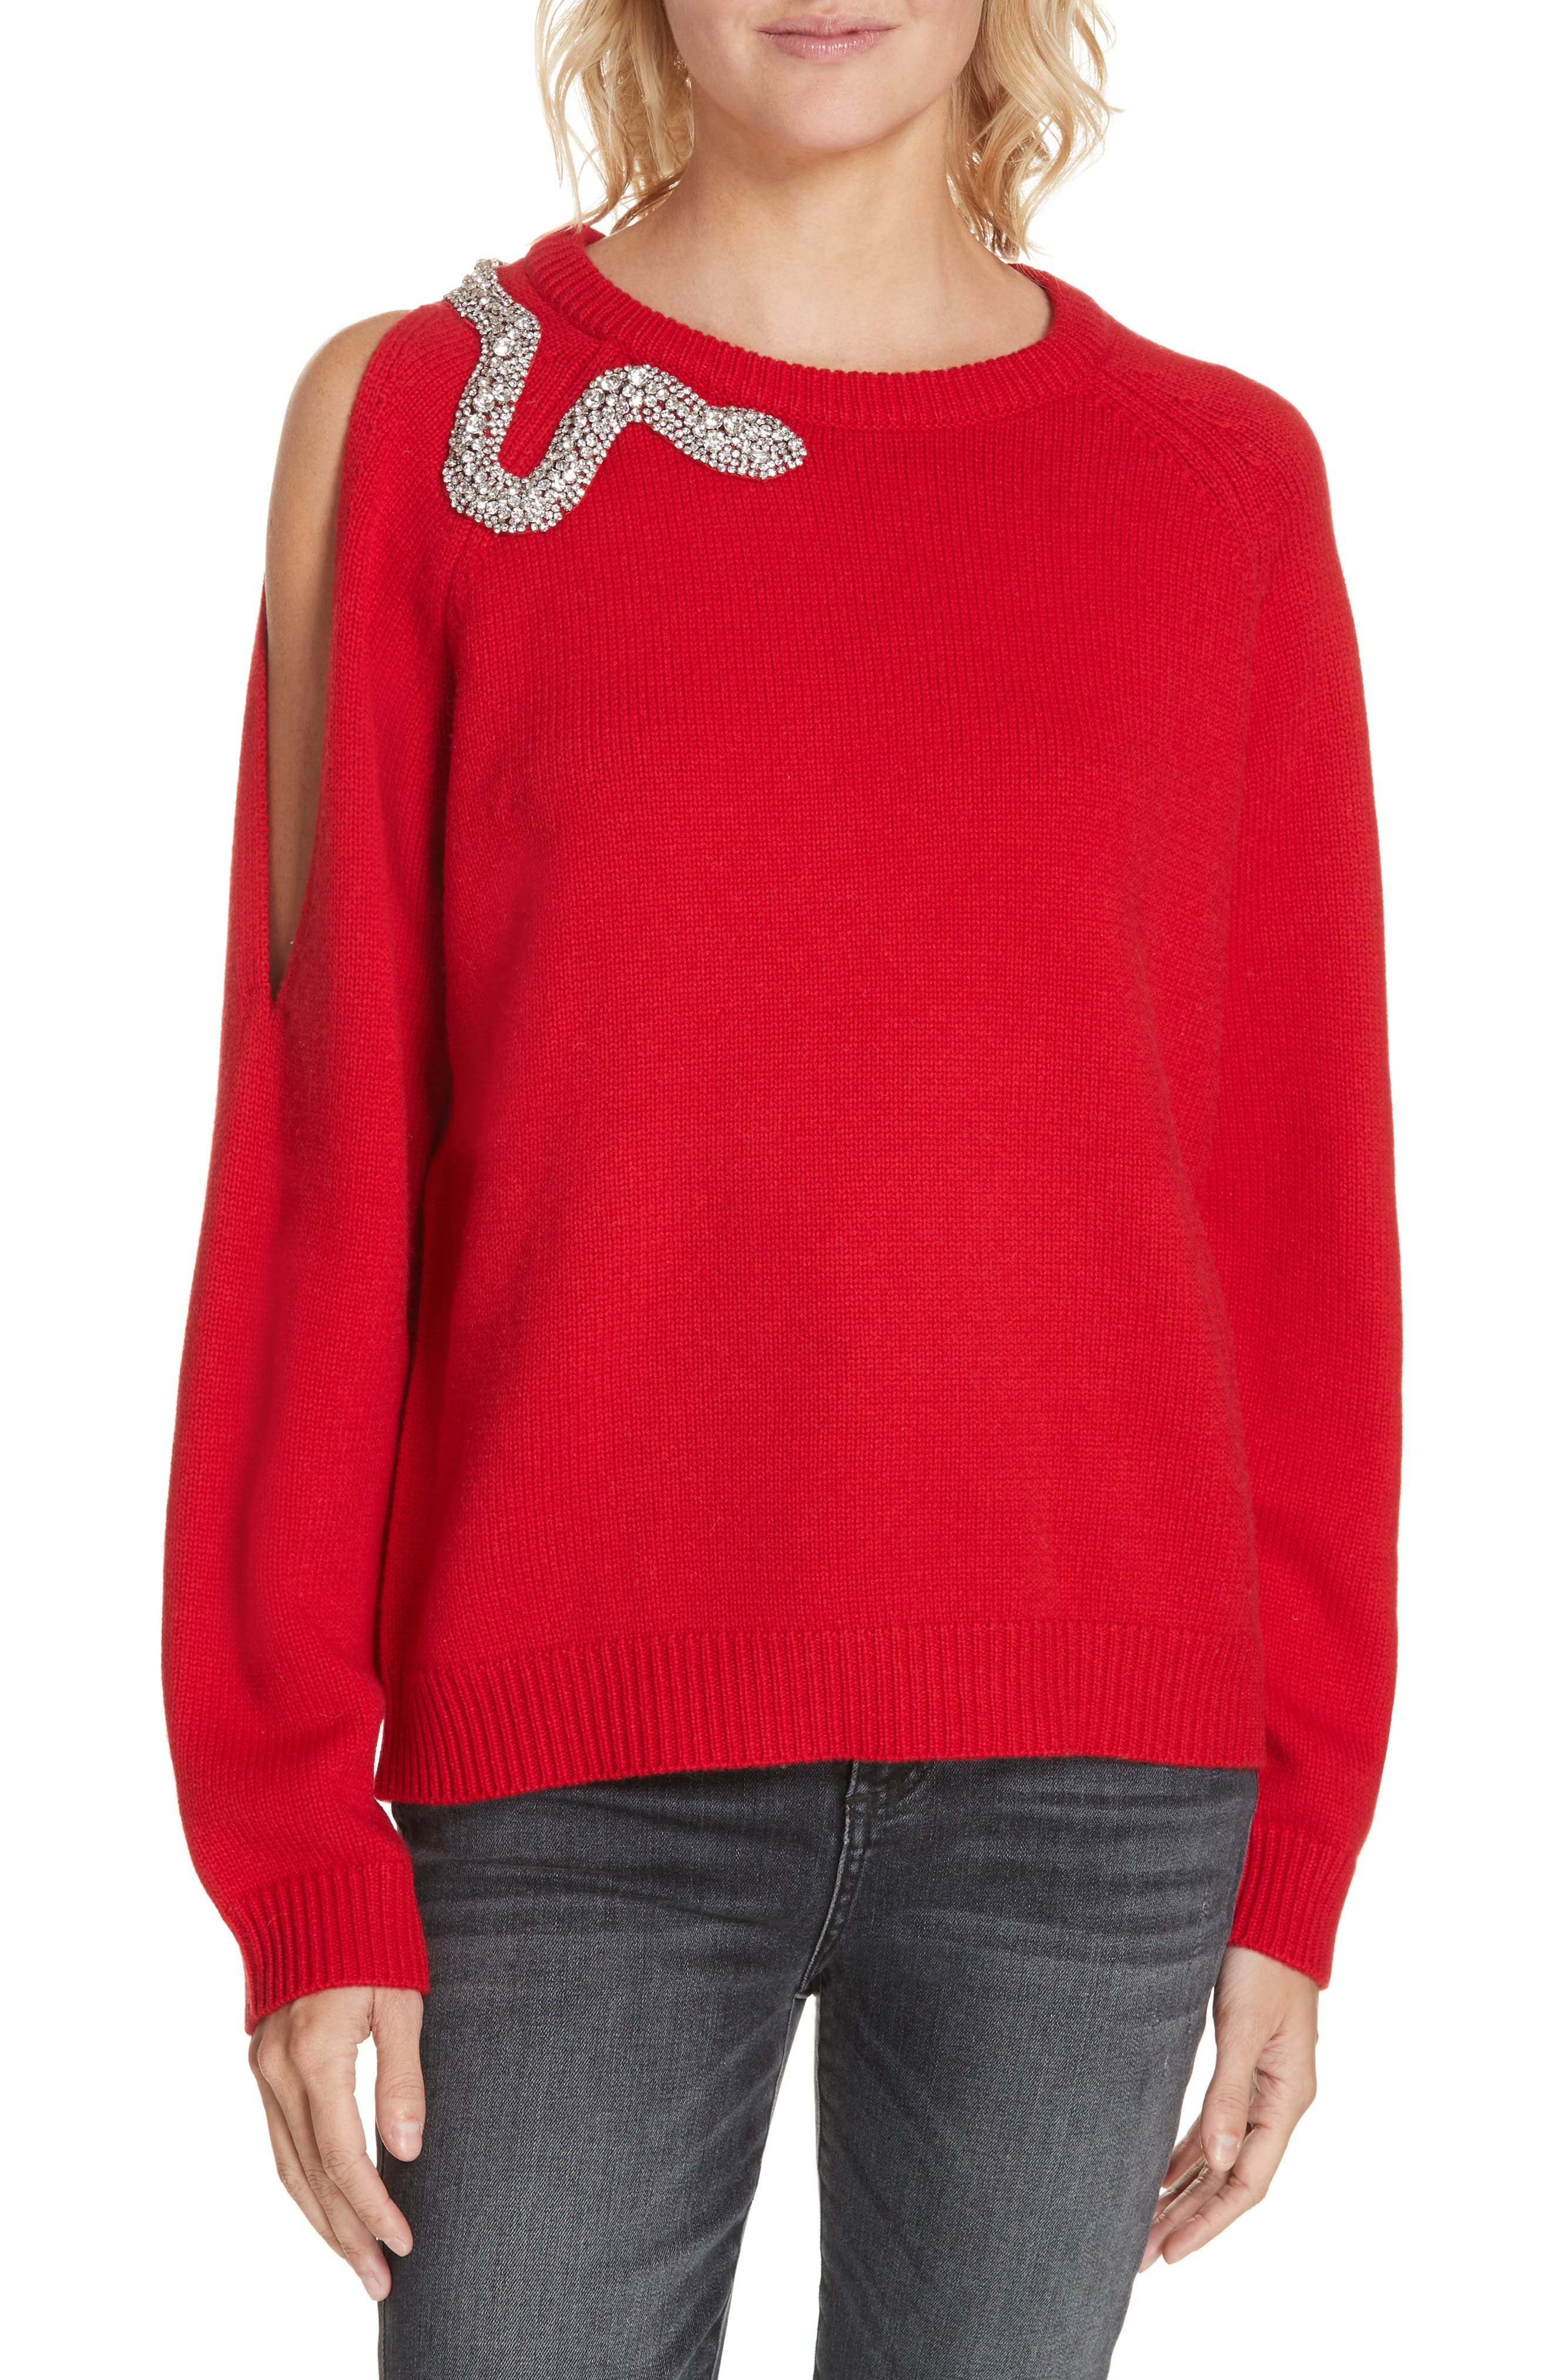 Ba & sh Ossi Embellished Wool Sweater, Red